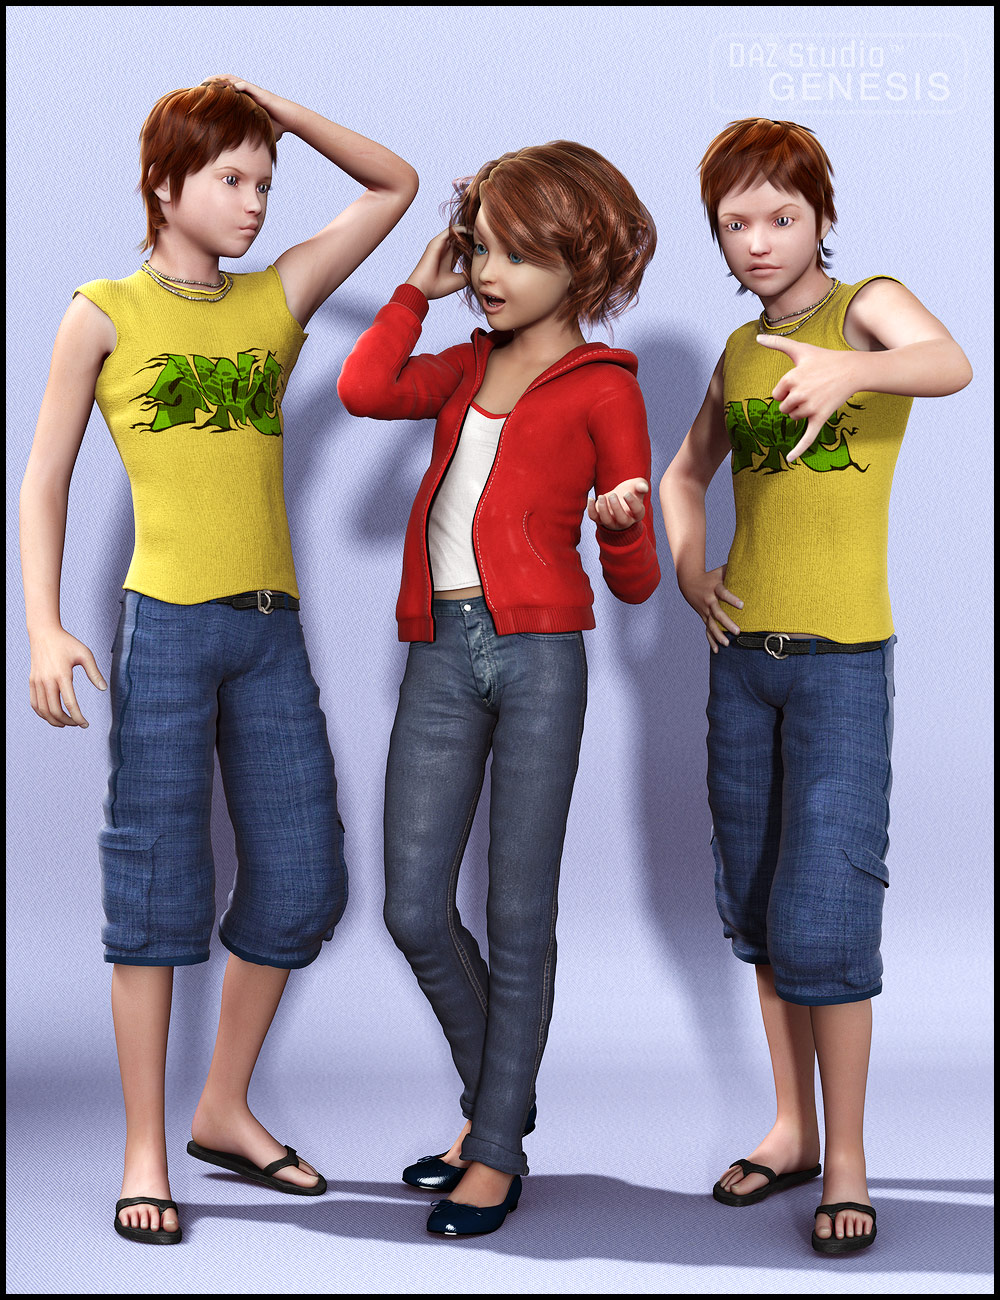 Teenage Poses by: Muscleman, 3D Models by Daz 3D